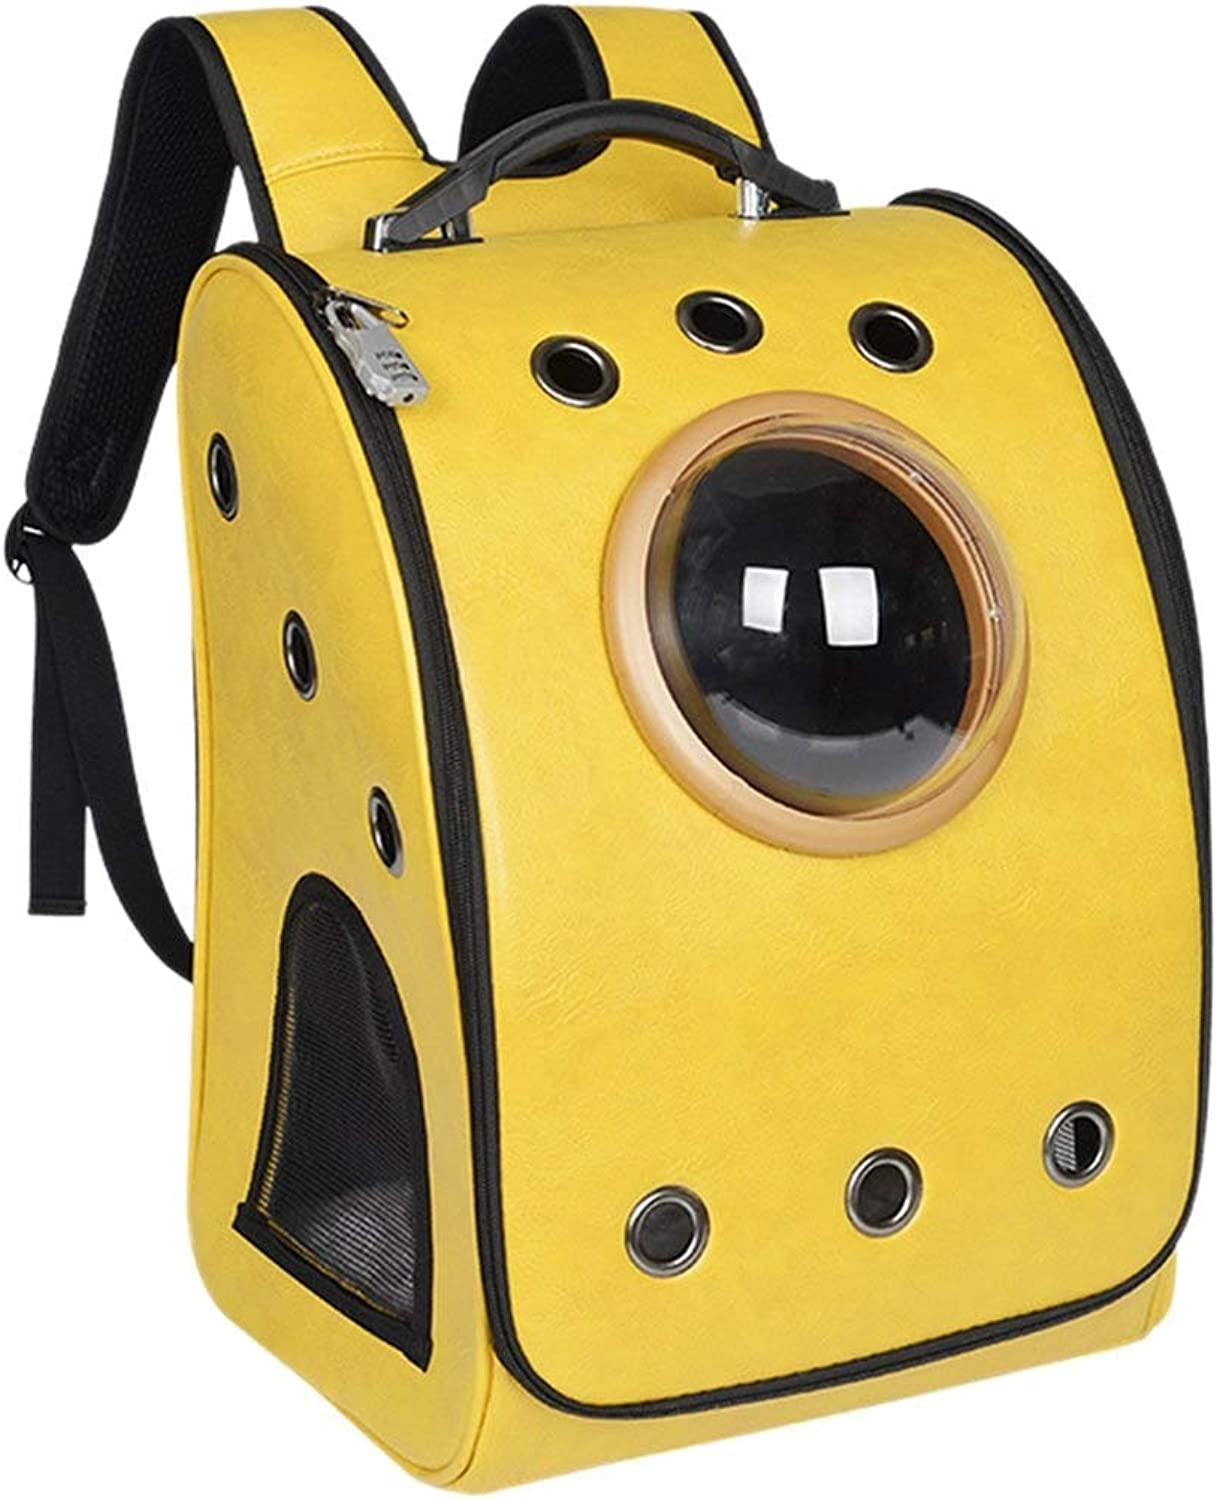 Anap Pet Carrier Space Capsule Backpack, Bubble Window Lightweight Padded Traveler for Cats, Dogs, Small Animals w Breathable Air Holes